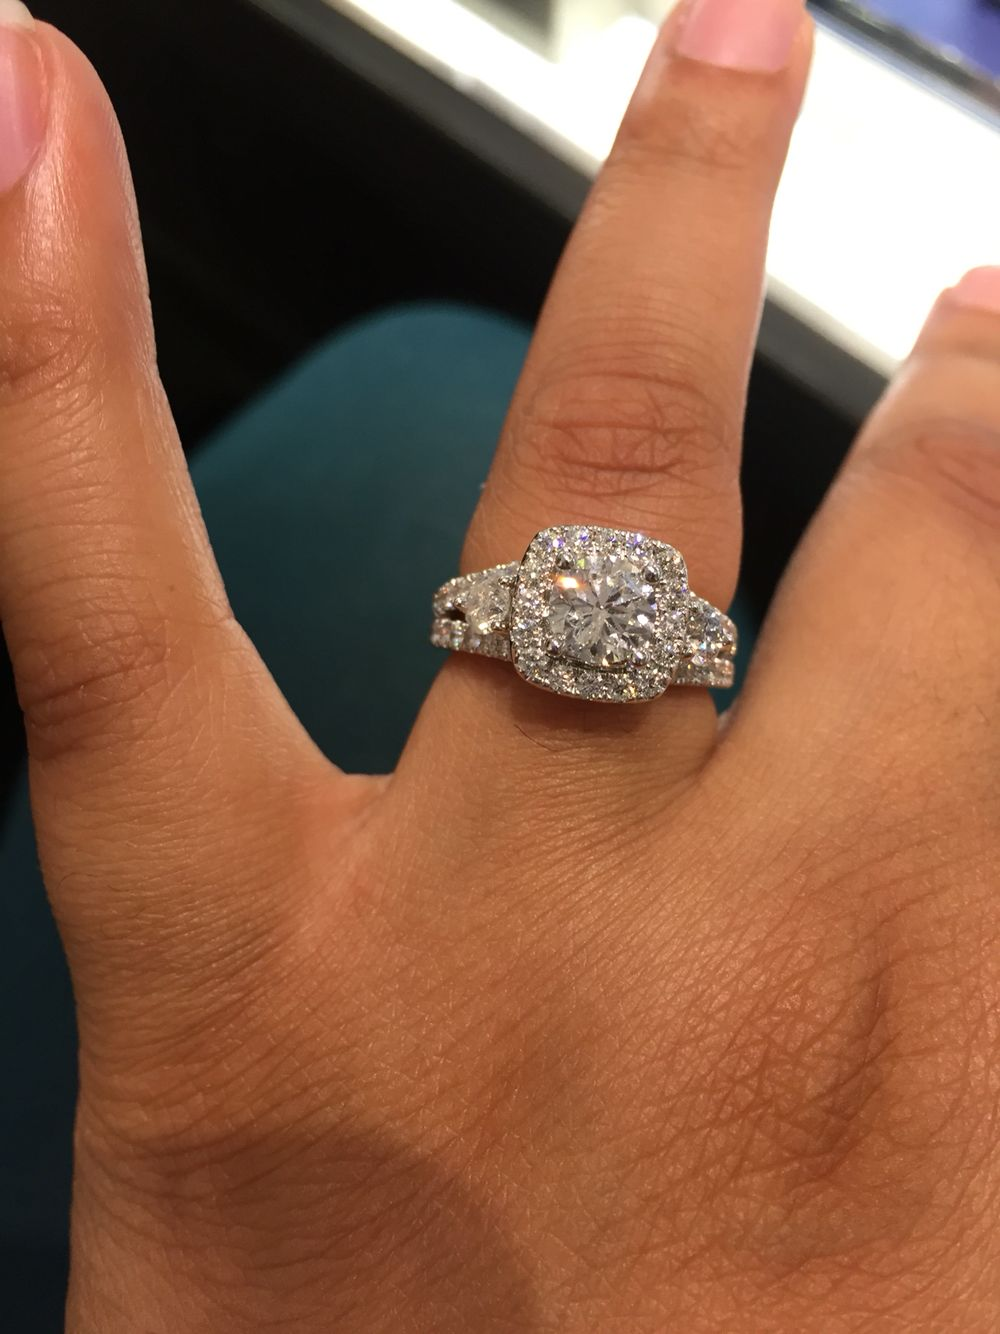 Zales Cushion Cut Halo Grand Celebration Engagement Ring $12,000